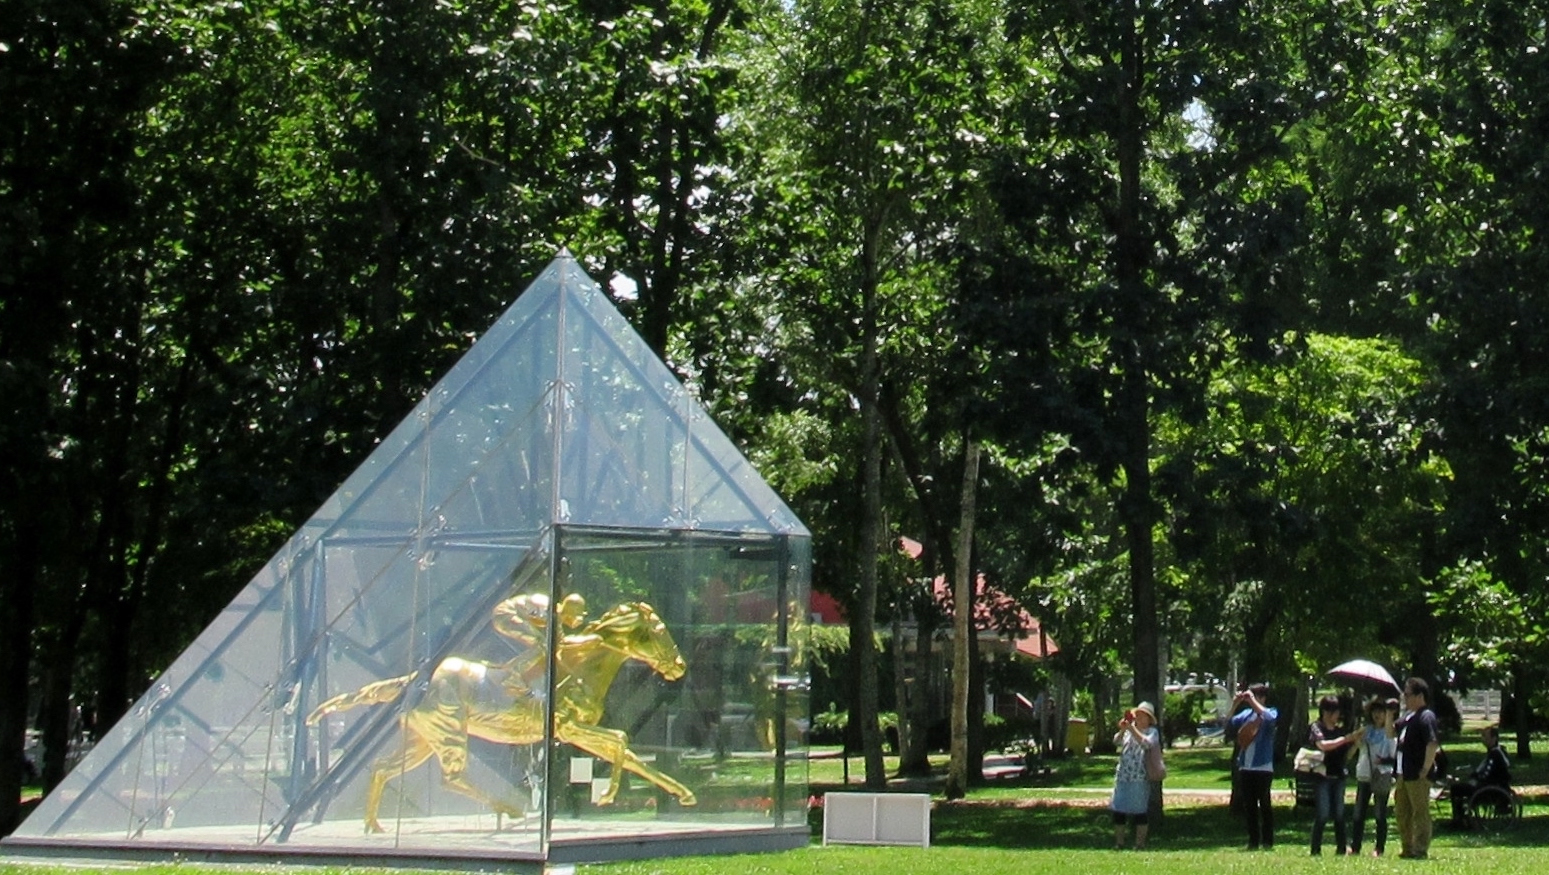 Immortalised: a gold statue of 2000 Kentucky Derby winner Fusaichi Pegasus encased in a glass pyramid is one of the main attractions at Northern Horse Park. Photo: Amanda Duckworth